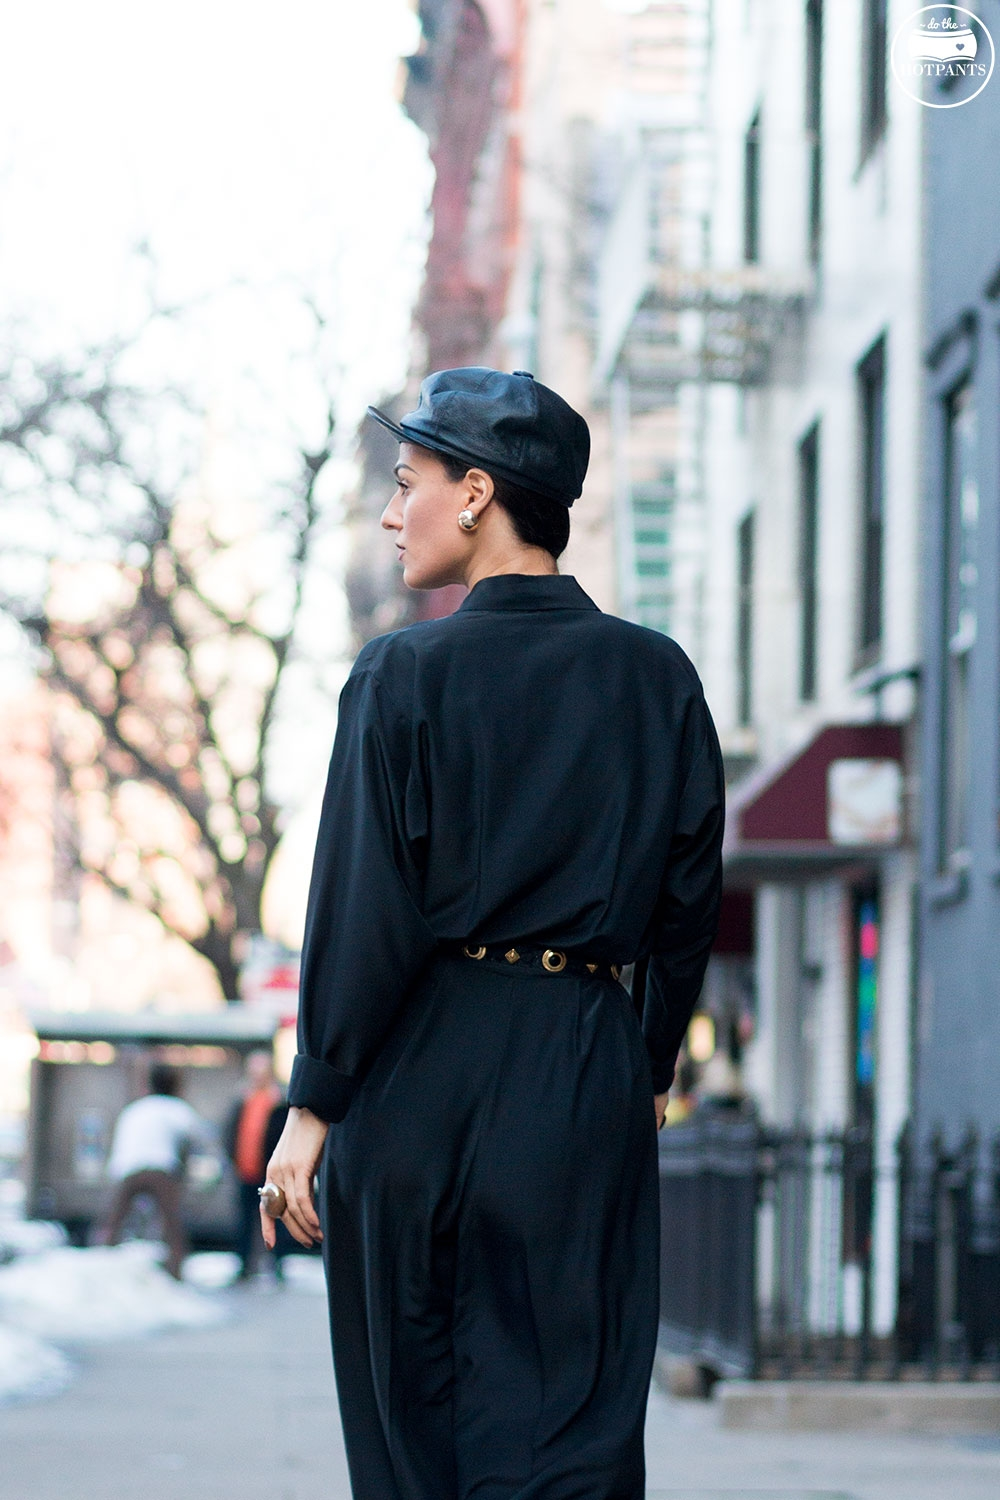 Do The Hotpants Dana Suchow Black Goth Jumpsuit Side Ponytail Leather Hat Winter Fashion Woman in Snow IMG_6512